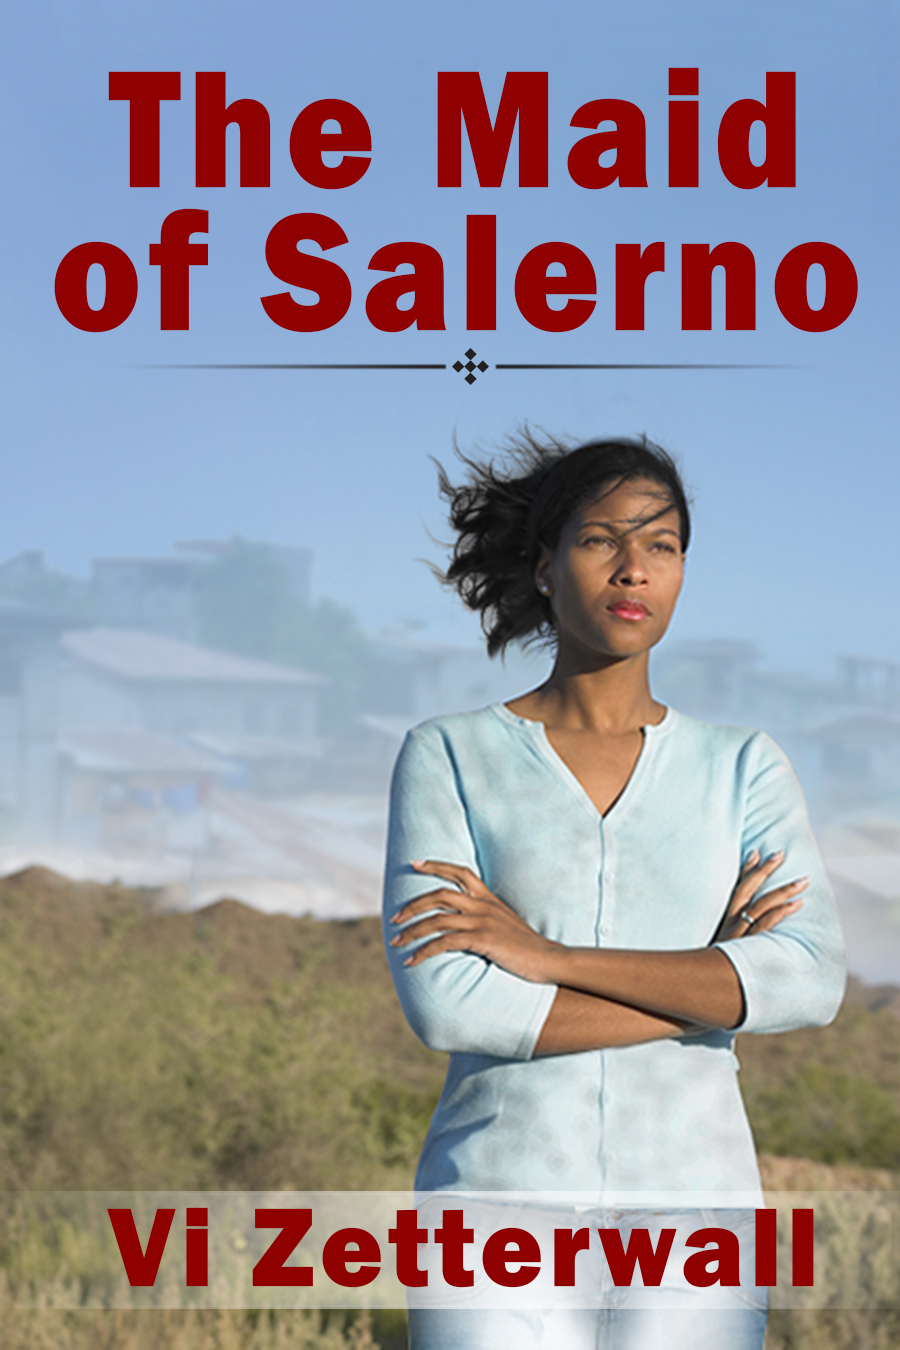 Maid_of_Salerno_WF1